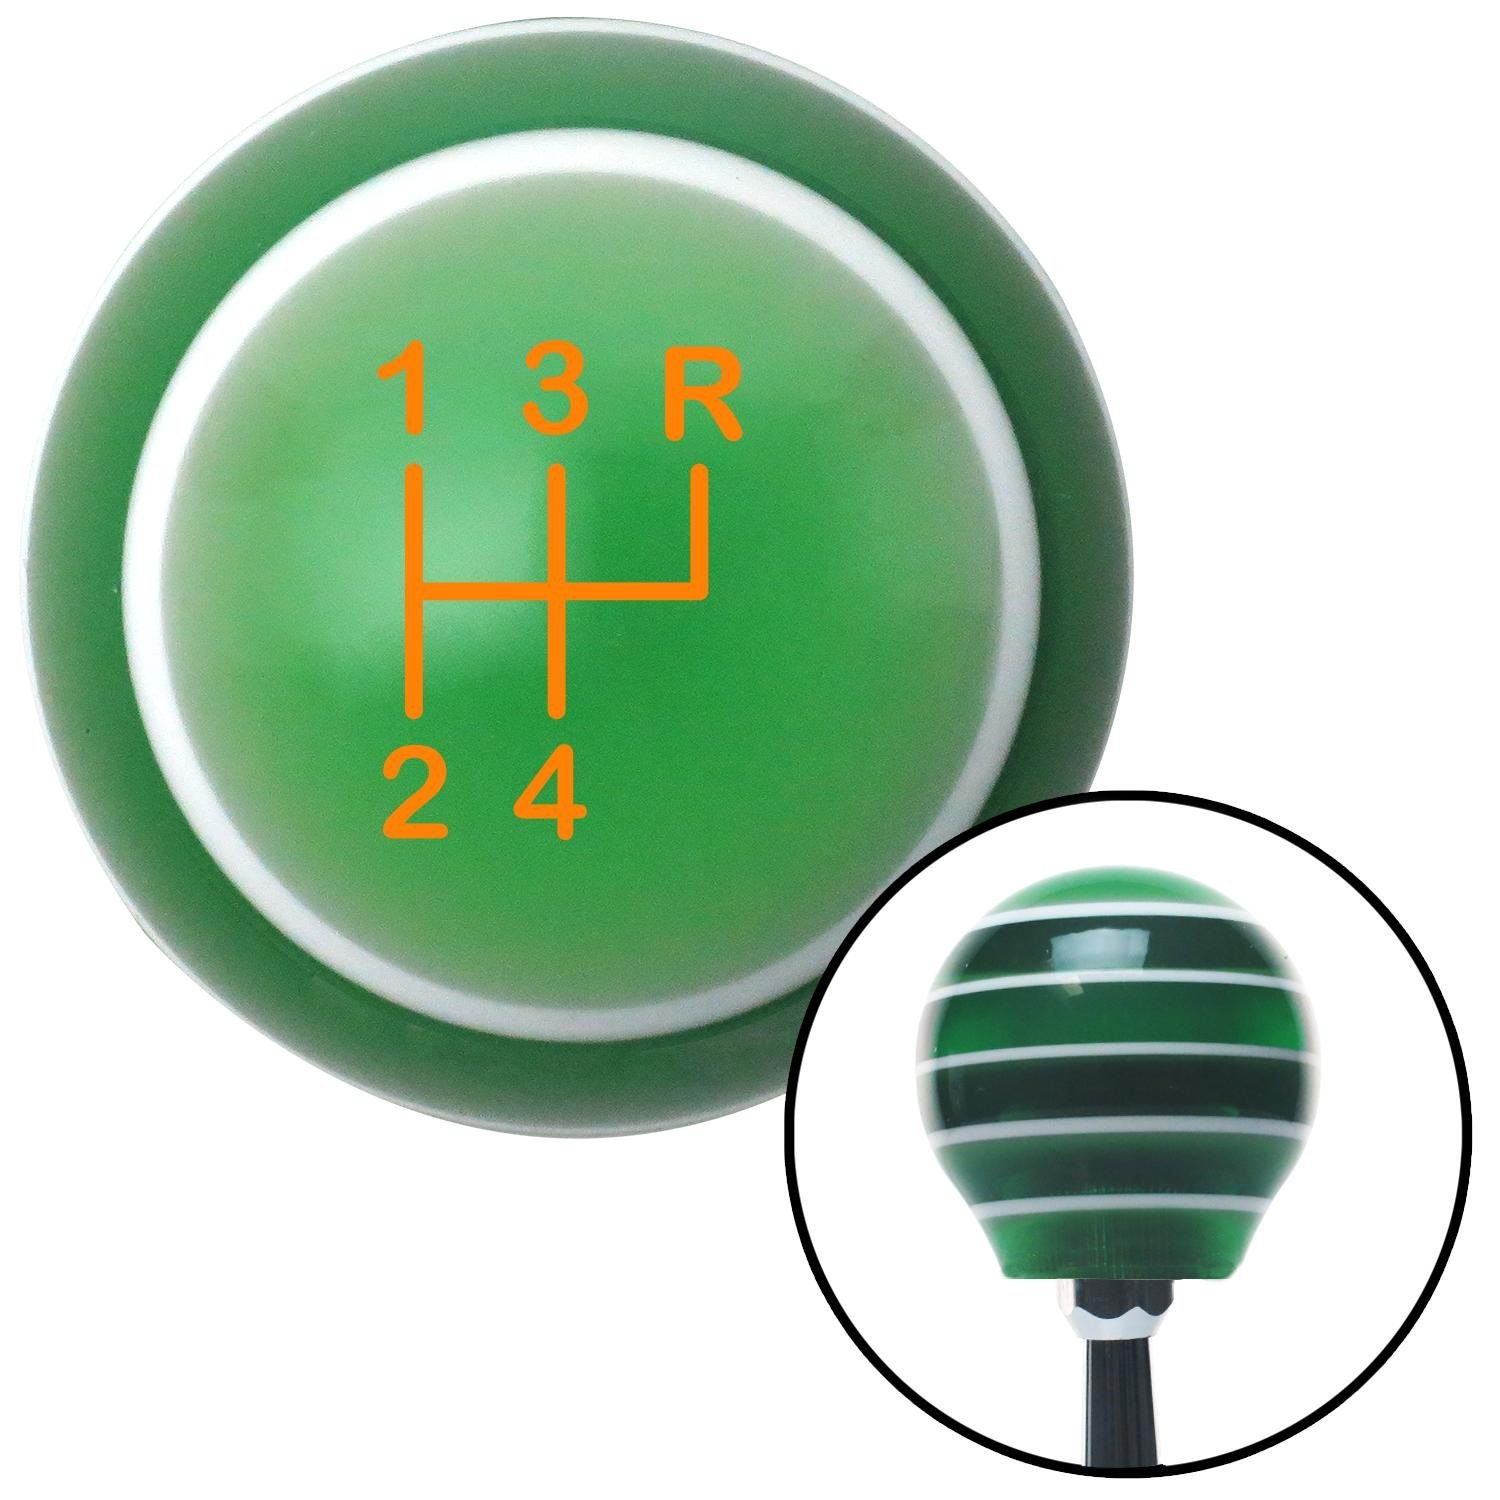 Orange Shift Pattern 7n American Shifter 127386 Green Stripe Shift Knob with M16 x 1.5 Insert